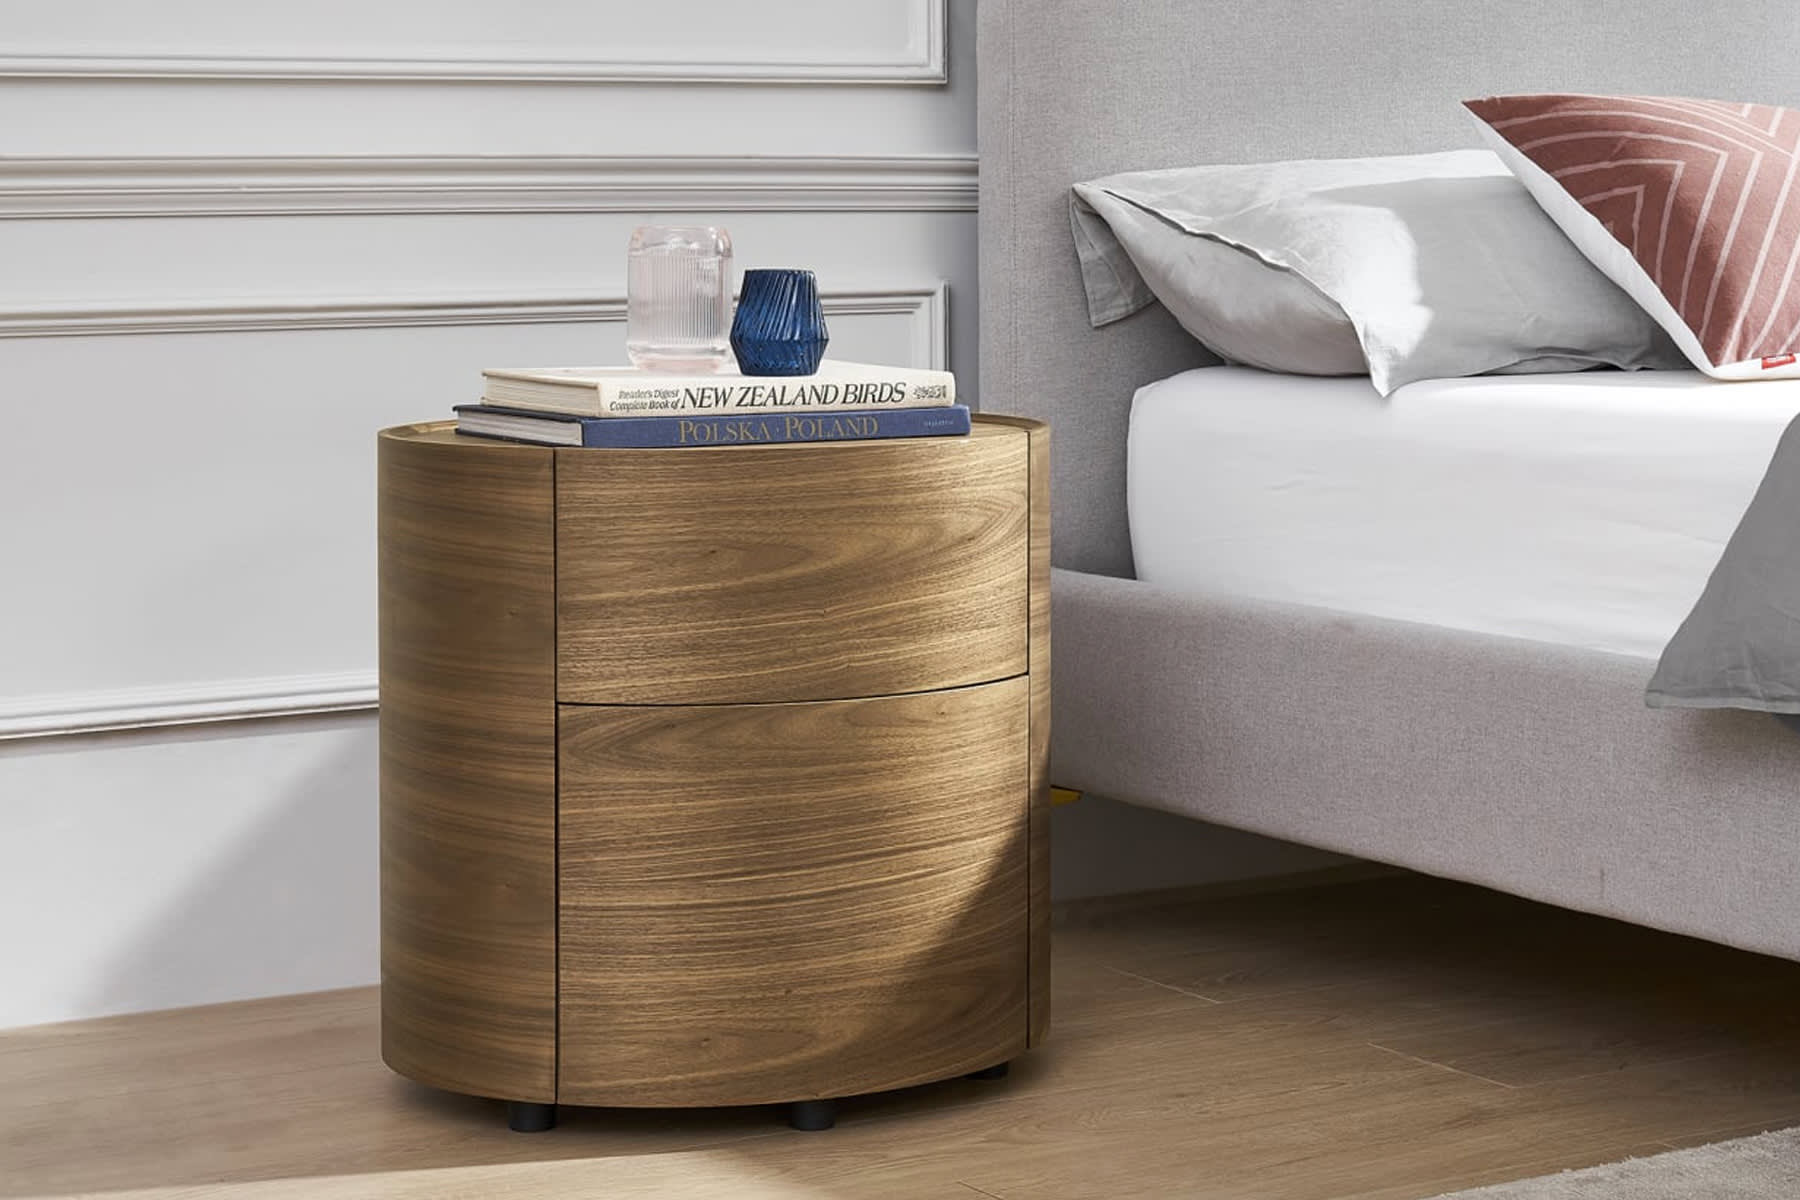 round wooden bedside table with books and mugs beside bed